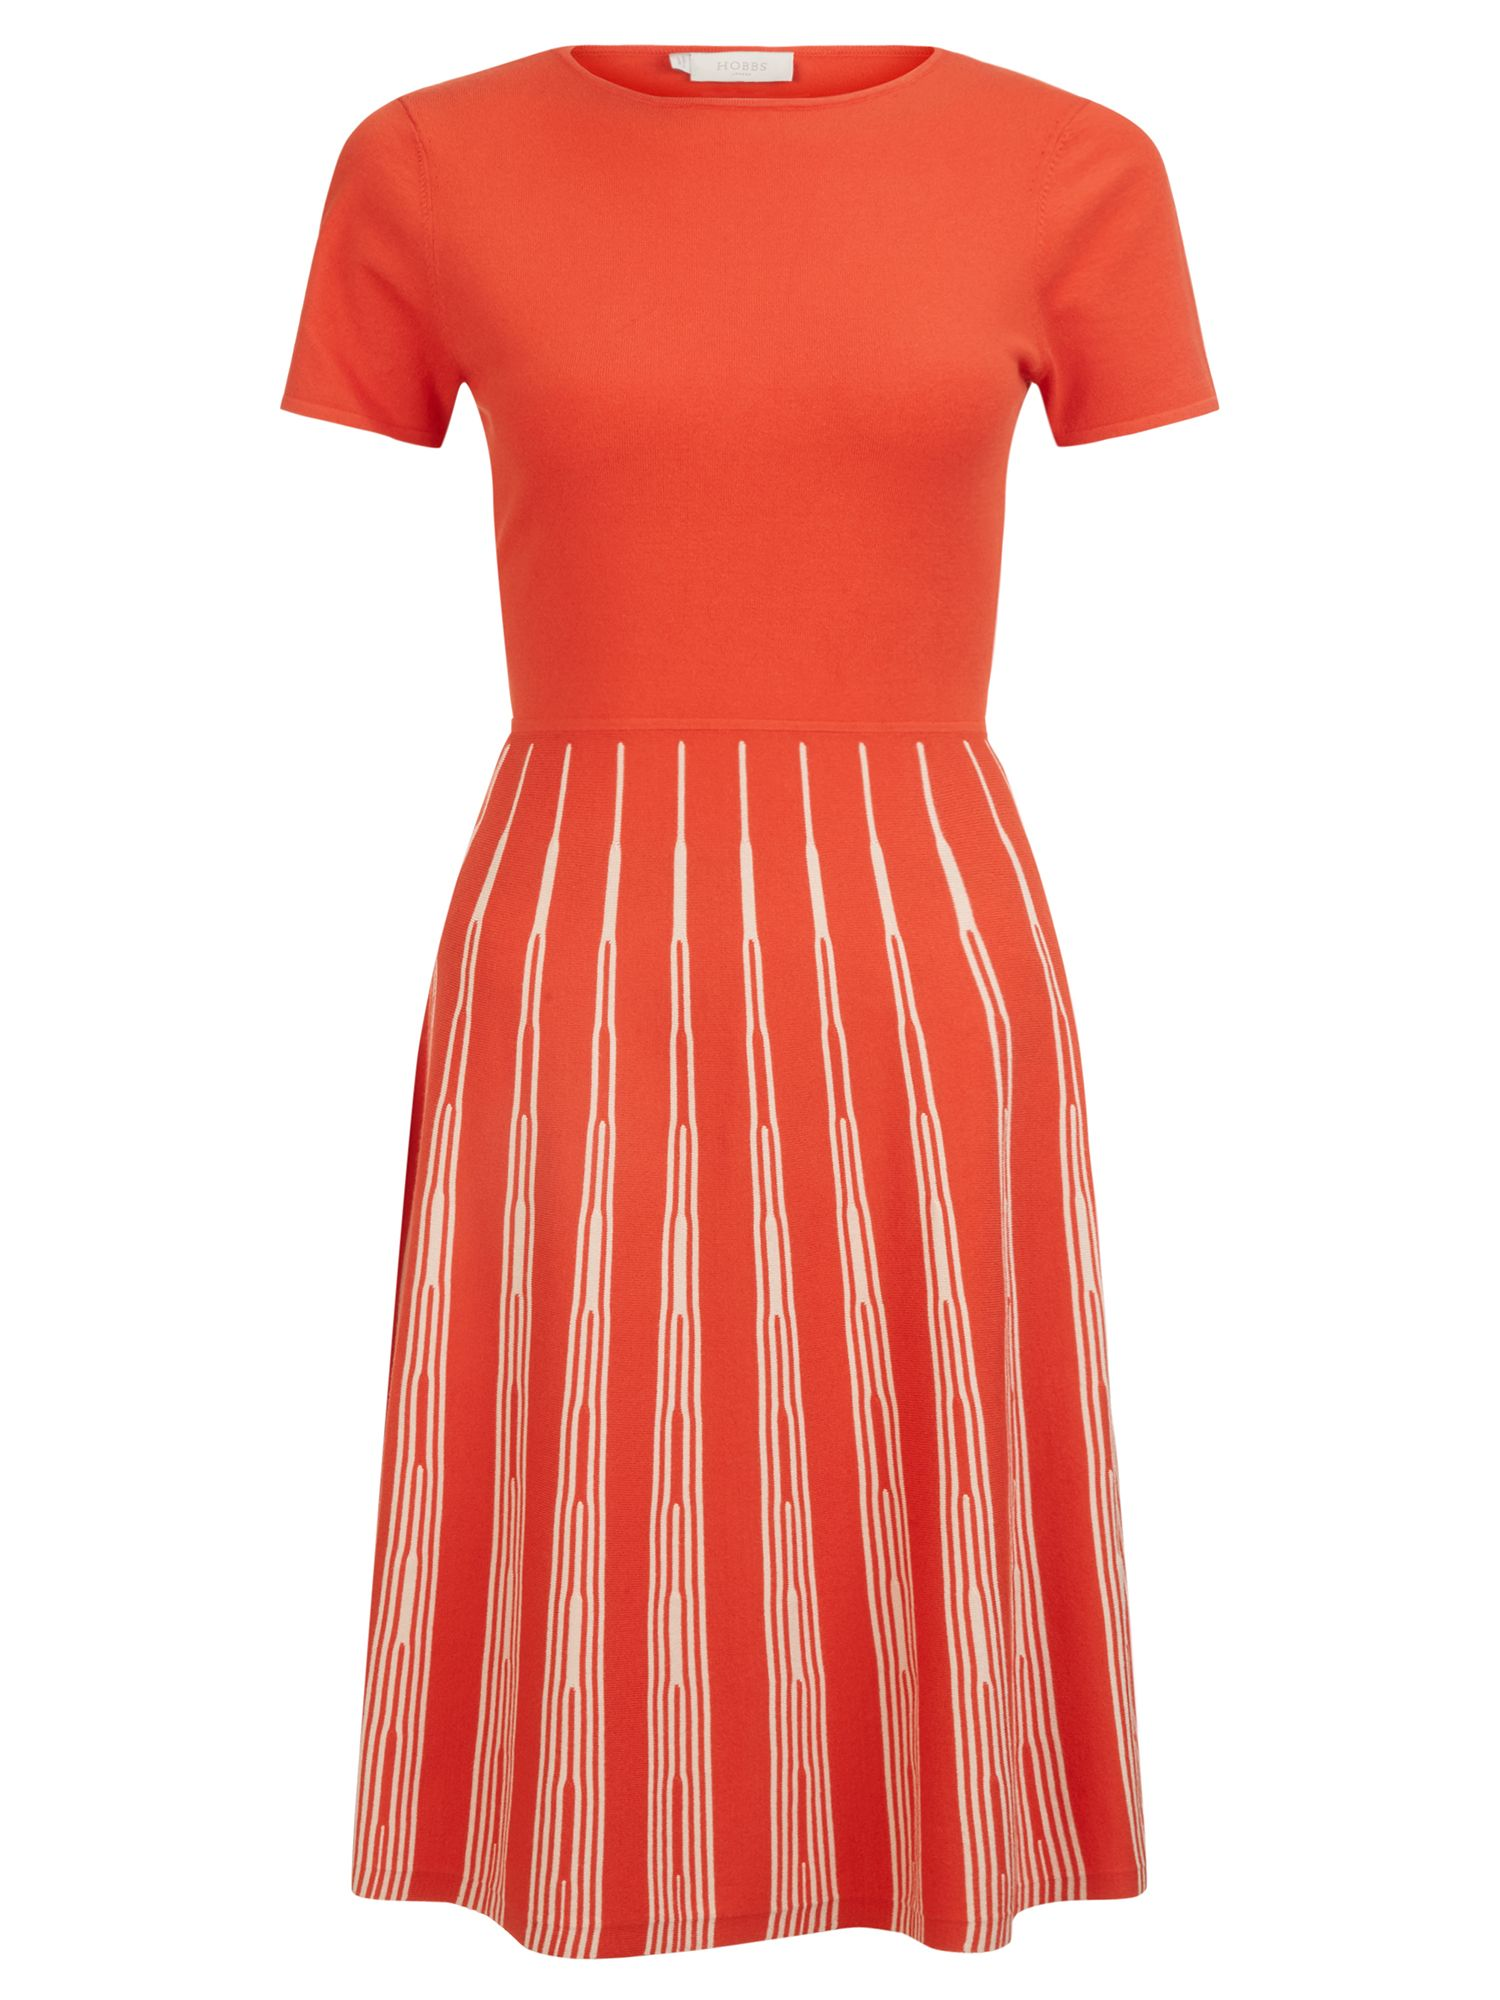 Hobbs Marlia Dress, Multi-Coloured